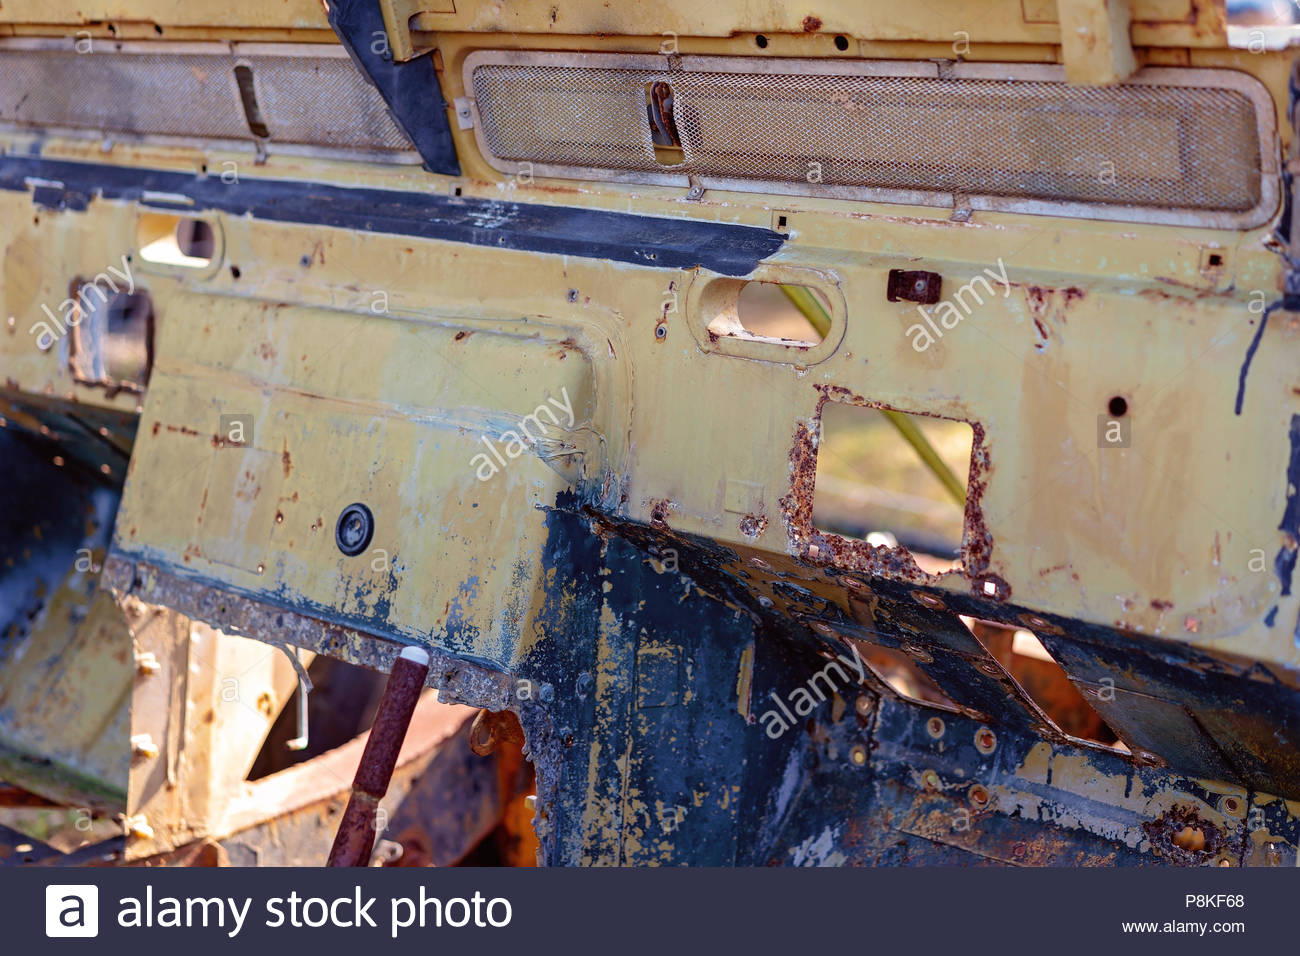 Close up of the interior of an old rusted and abandoned car - Stock Image